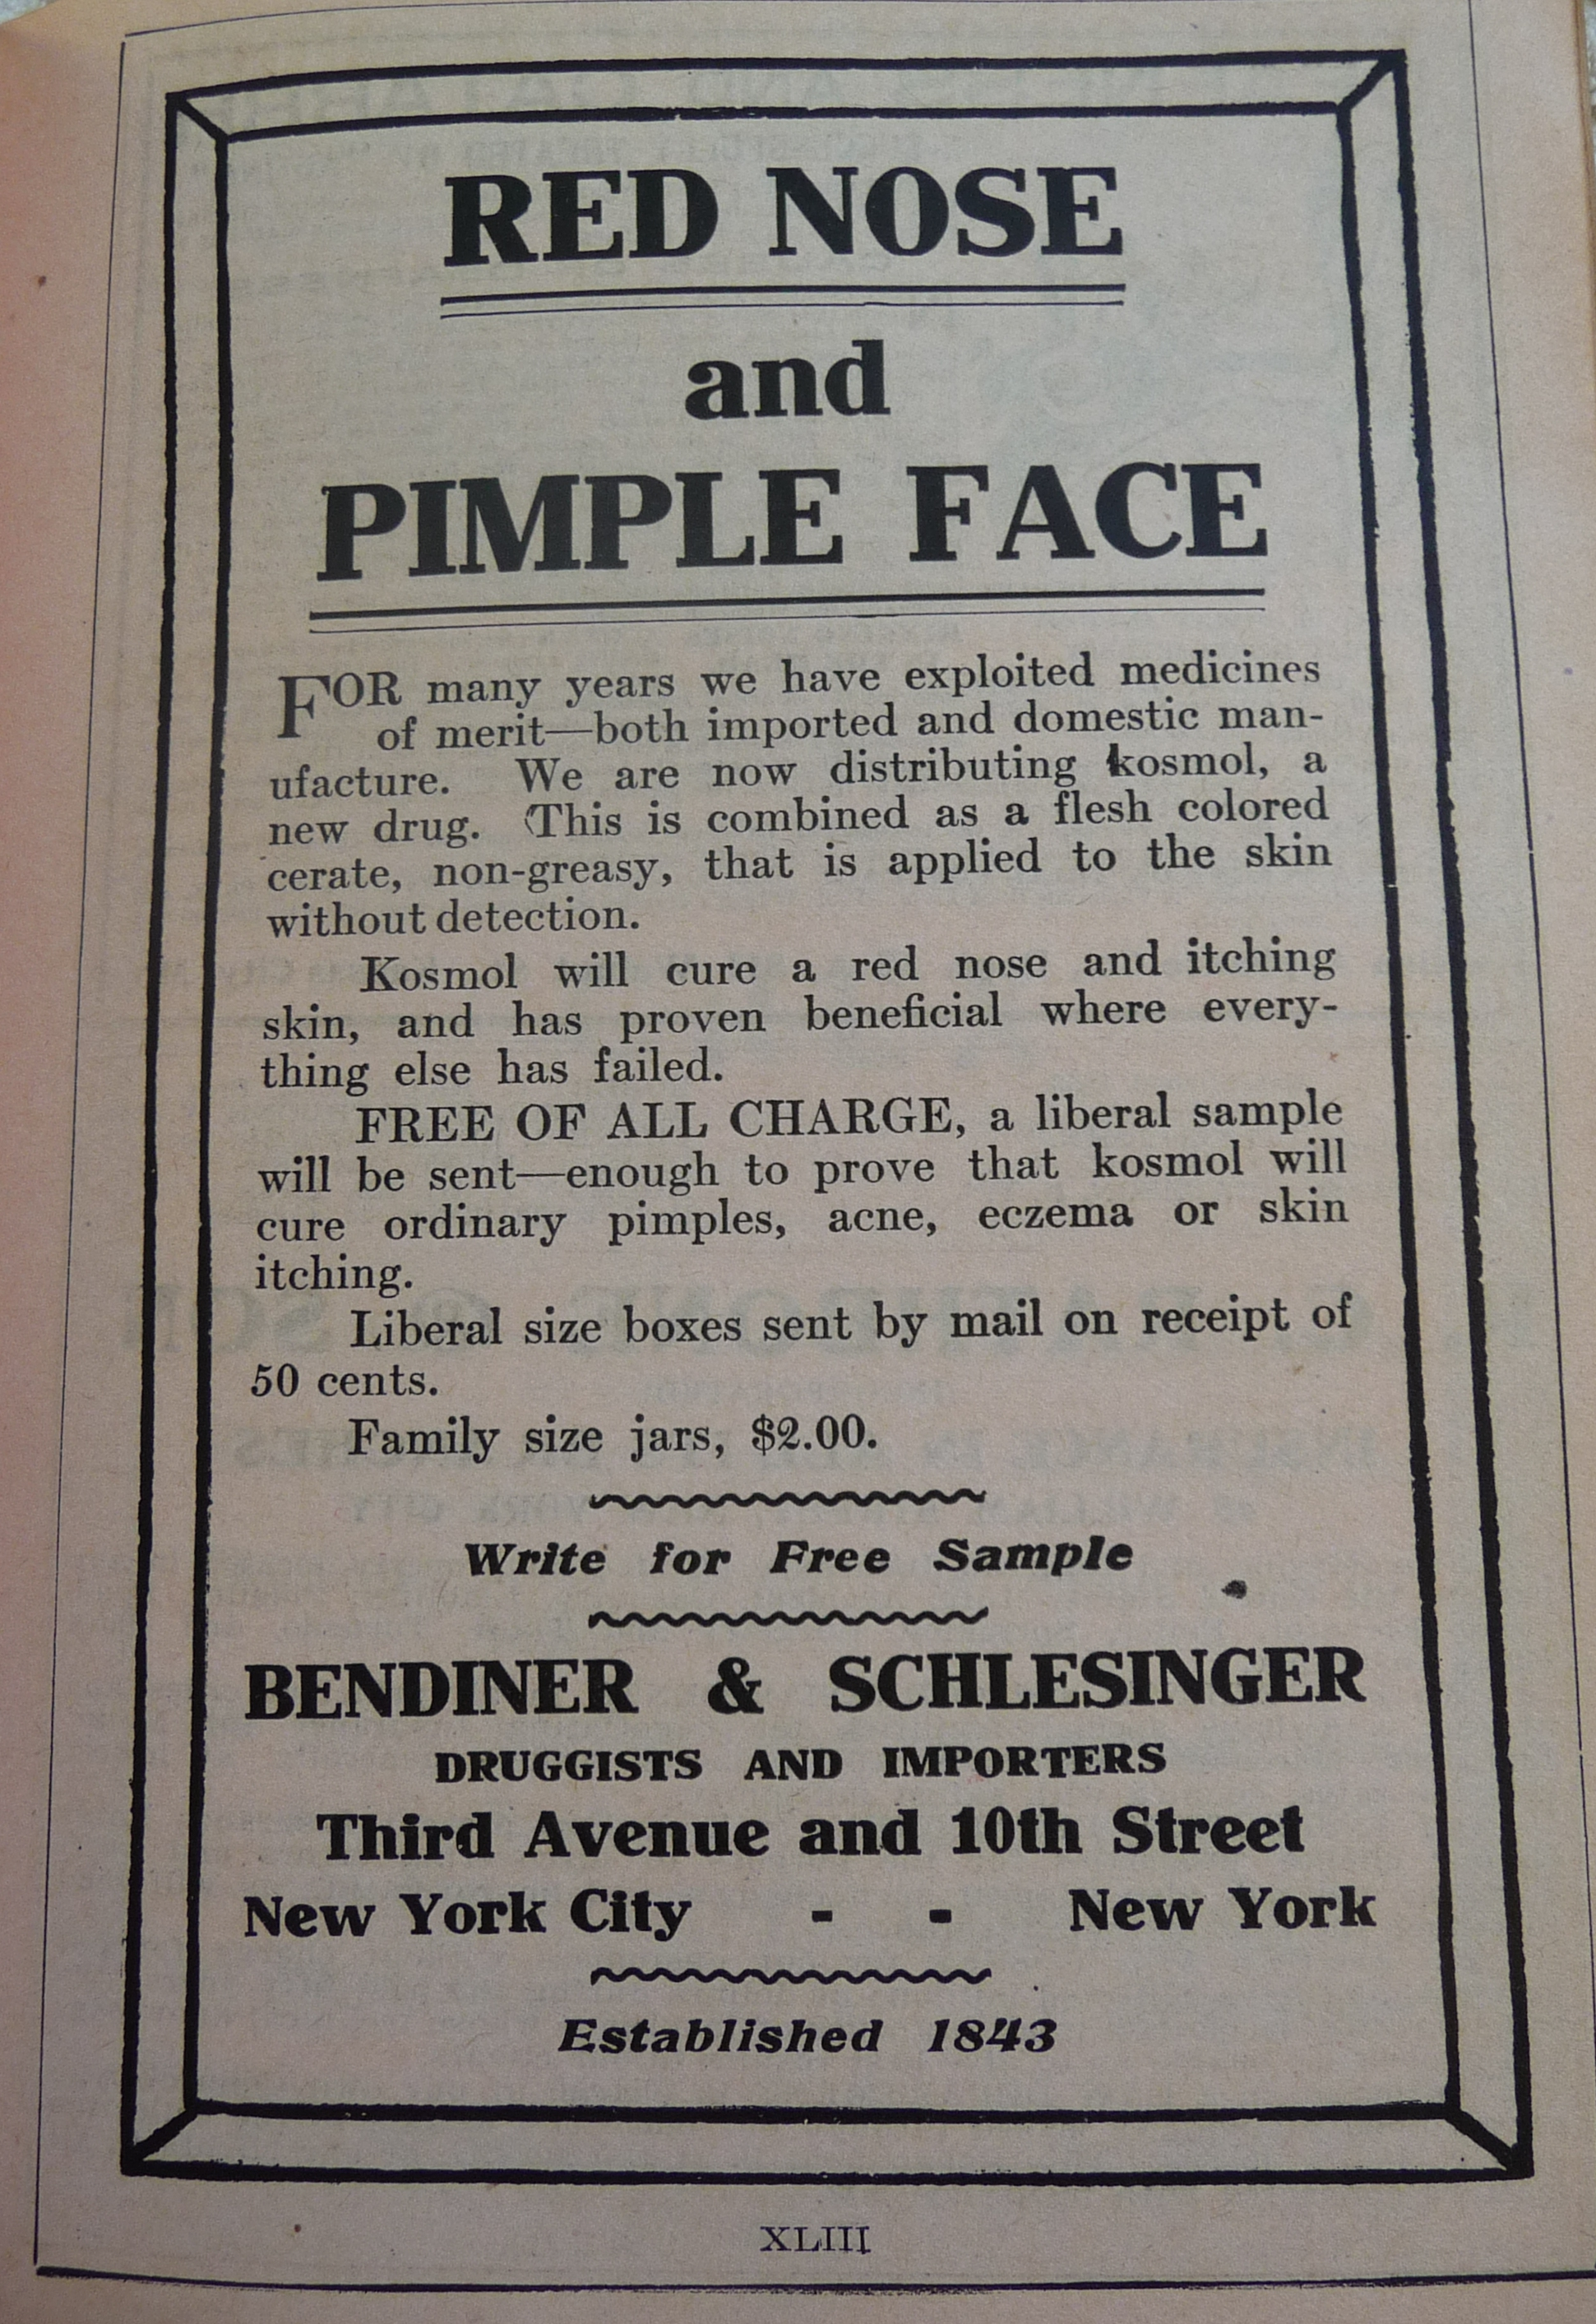 Old Time Ads From The 1910 World Almanac – Part 1